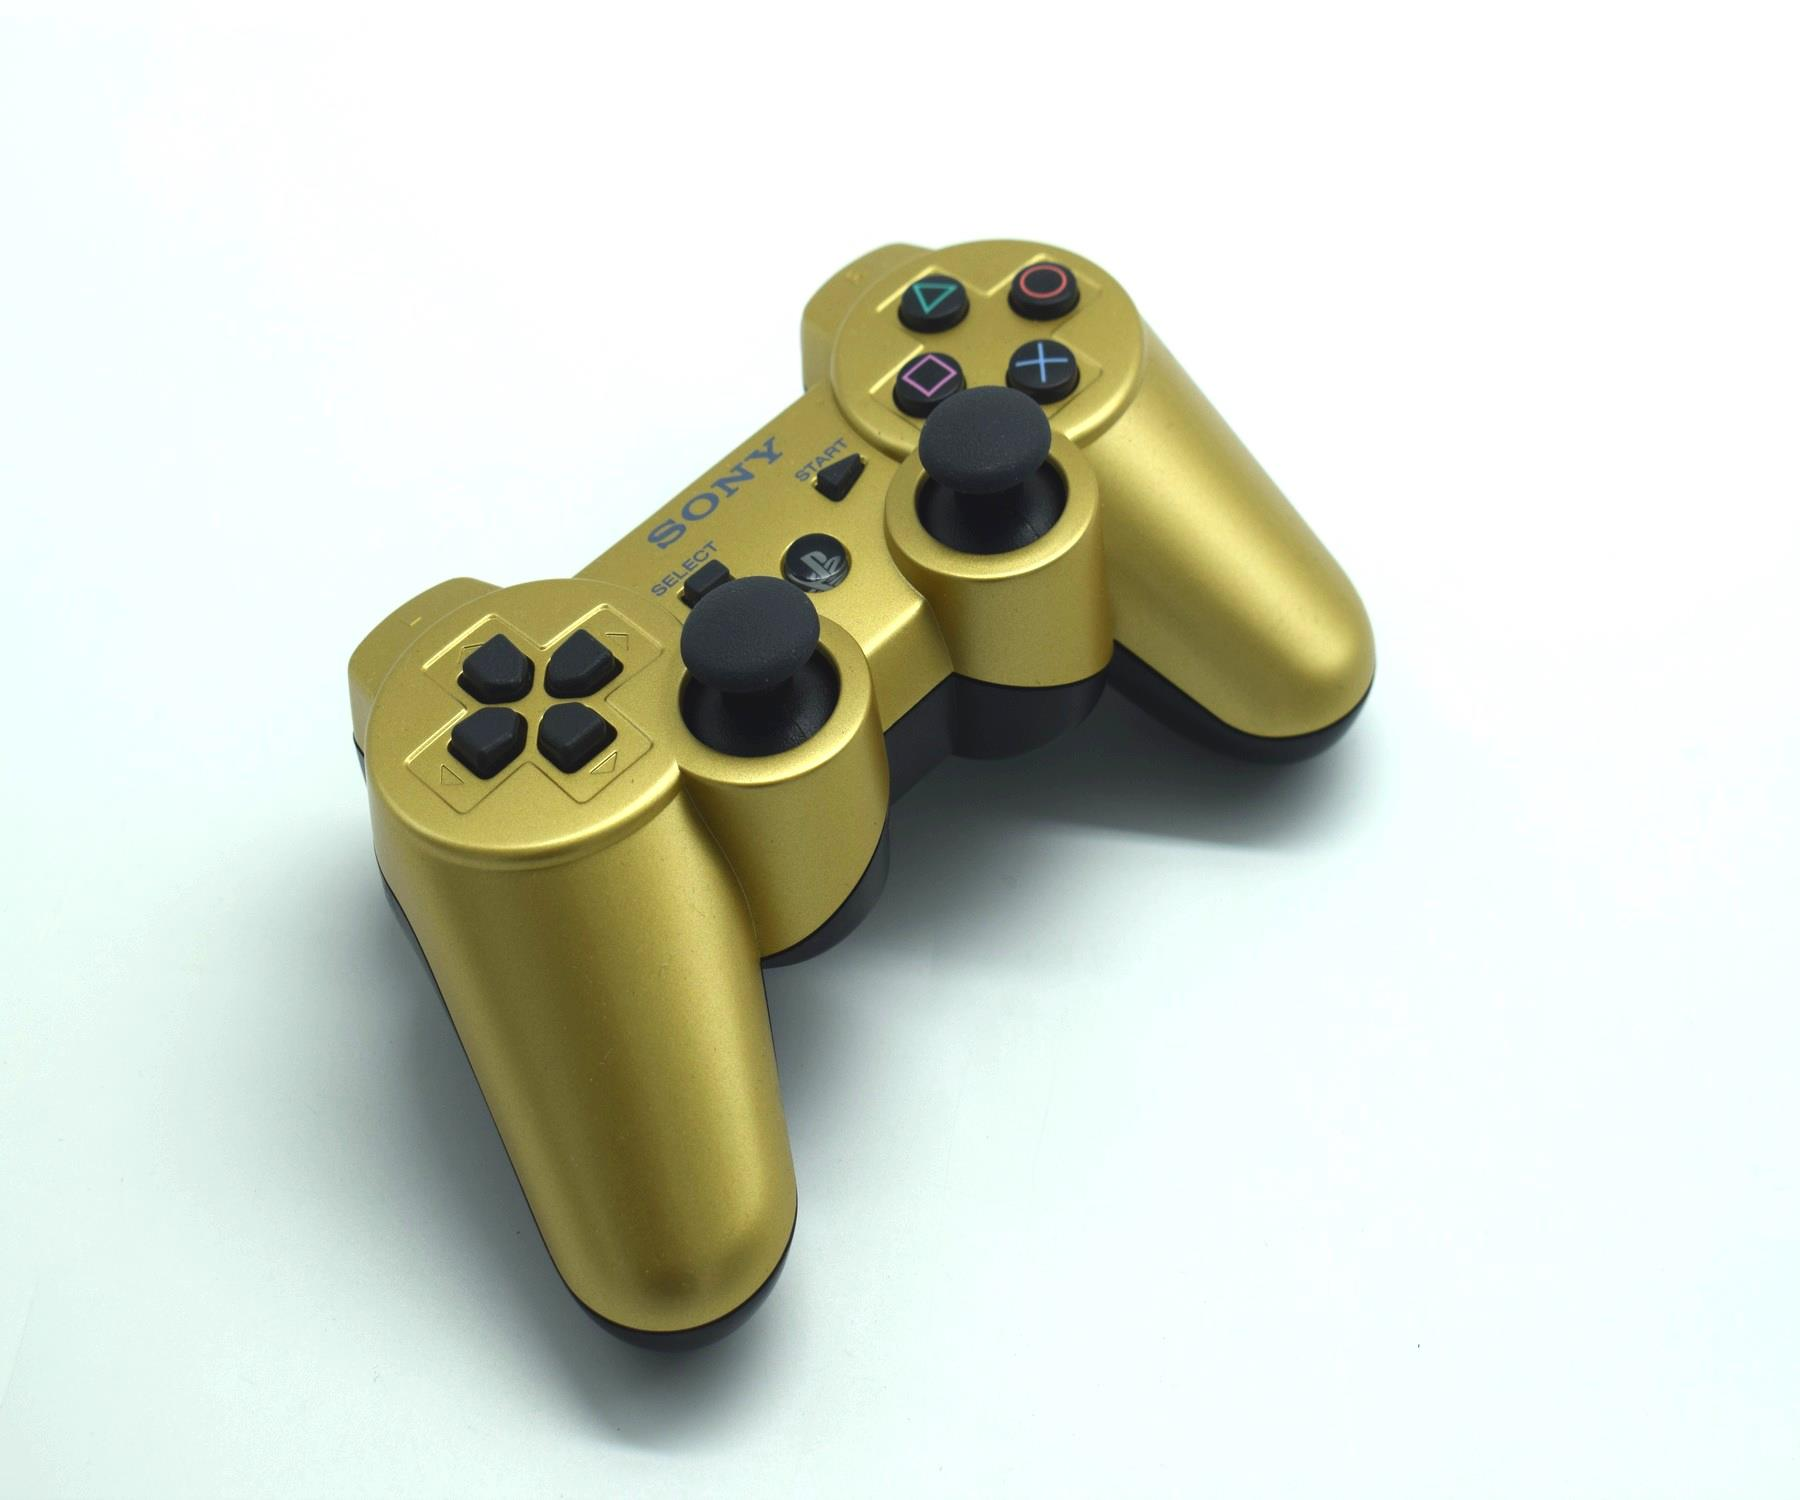 Official-Original-Sony-Playstation-Dual-Shock-3-PS3-Controller-Multiple-Colours thumbnail 24